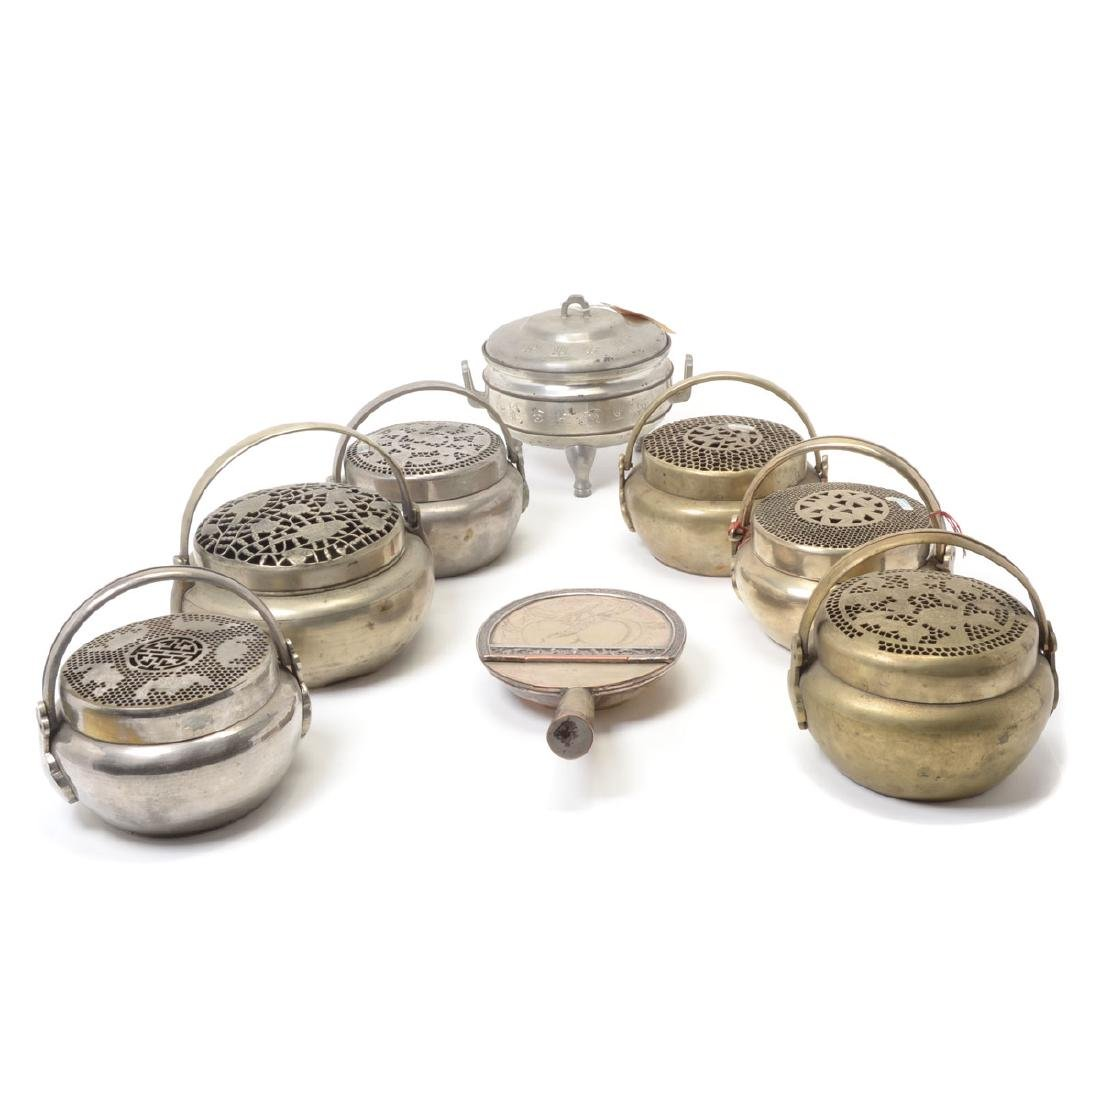 Group of Metal Hand Warmers and Censer